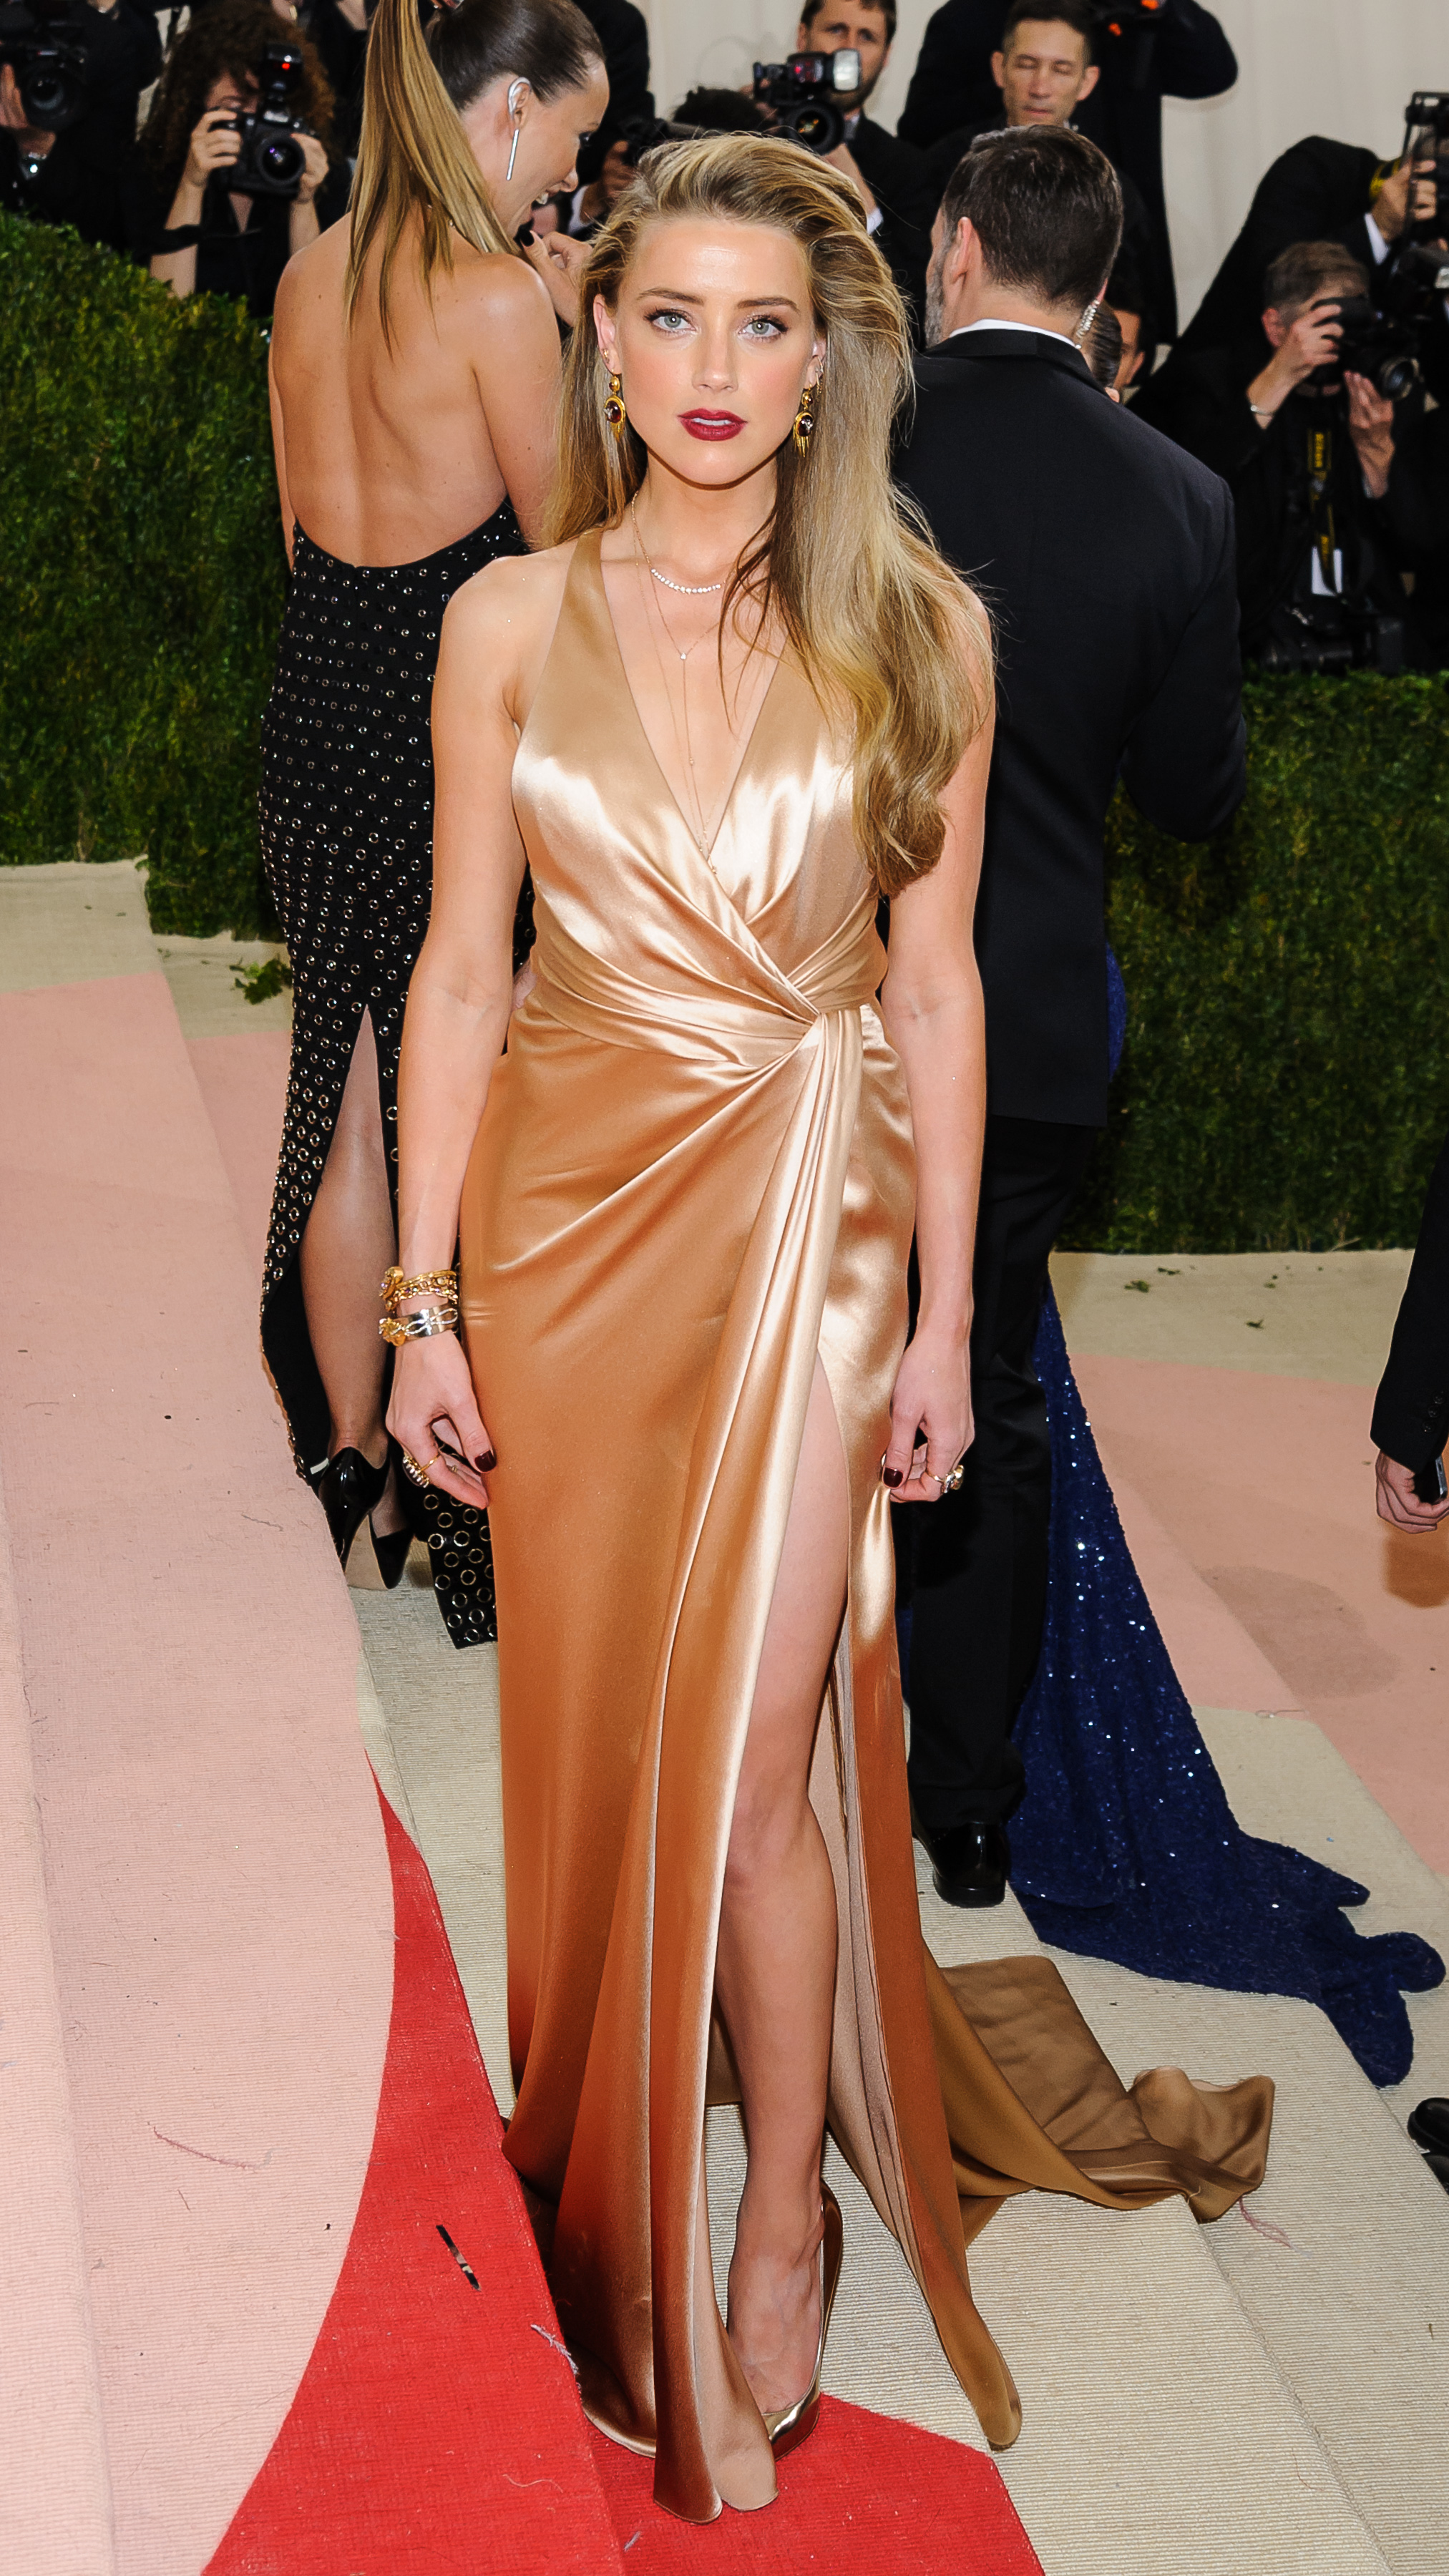 Metropolitan Museum of Art Costume Institute Gala: Manus x Machina: Fashion in the Age of Technology at the Met Museum                                    Featuring: Amber Heard                  Where: New York City, New York, United States                  When: 03 May 2016                  Credit: WENN.com